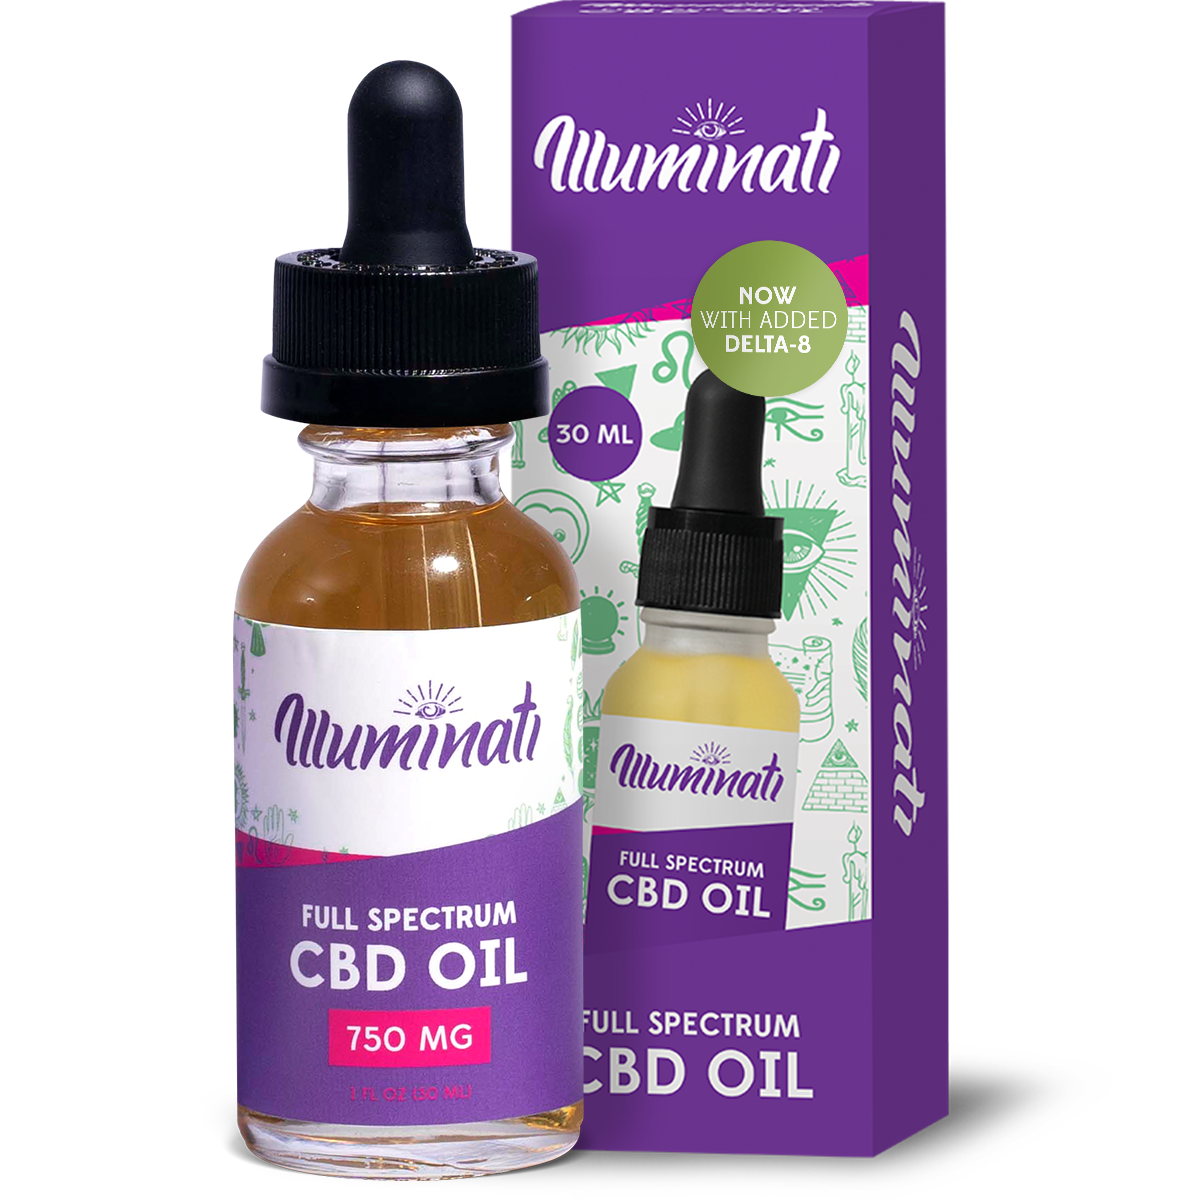 Illuminati Delta 8 THC Oil Drops 1350mg + CBD 1500mg